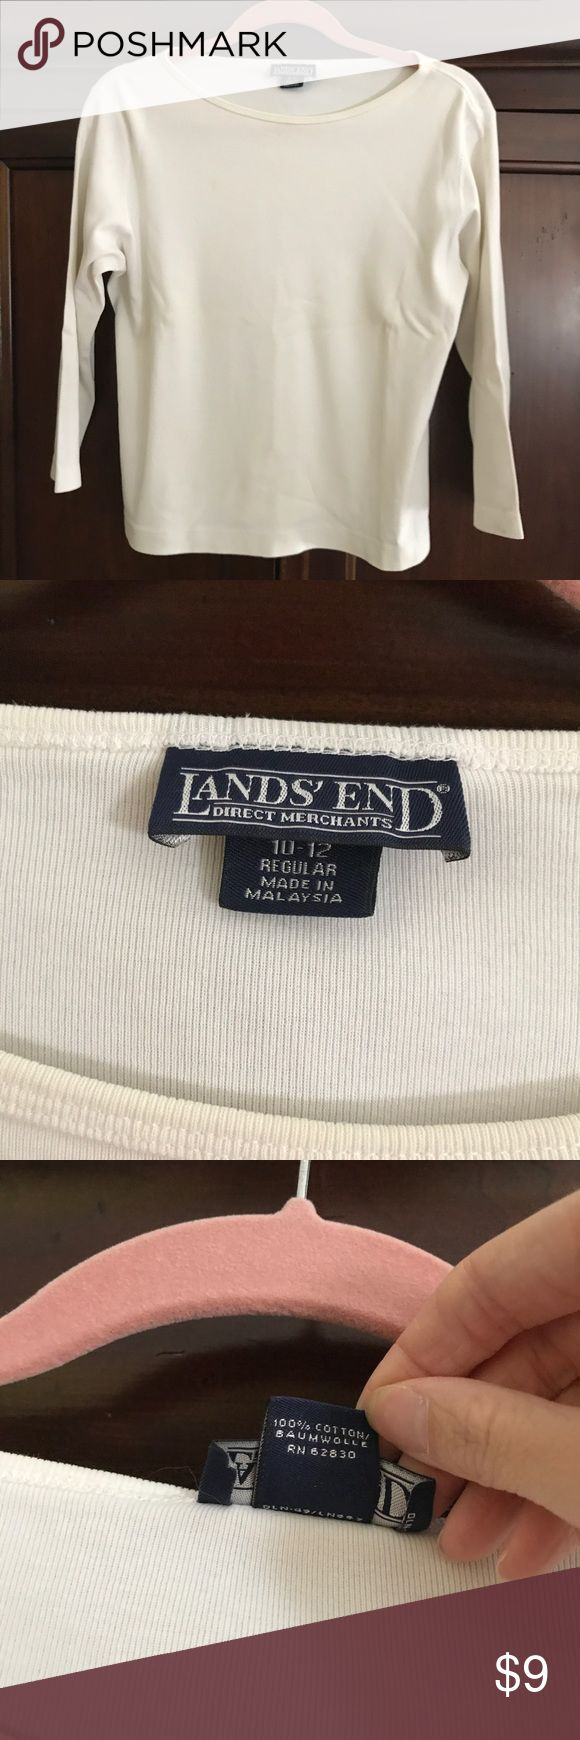 Lands End 3/4 sleeve tee Great condition.  🌼Thank you for looking!  🌼I ship within 2 days shipping excluding holidays 🌼I do not trade! 🌼I only accept offers through the offer button! 🌼Thank you for shopping and feel free to ask any questions! 🚭Smoke free home! Lands' End Tops Tees - Long Sleeve